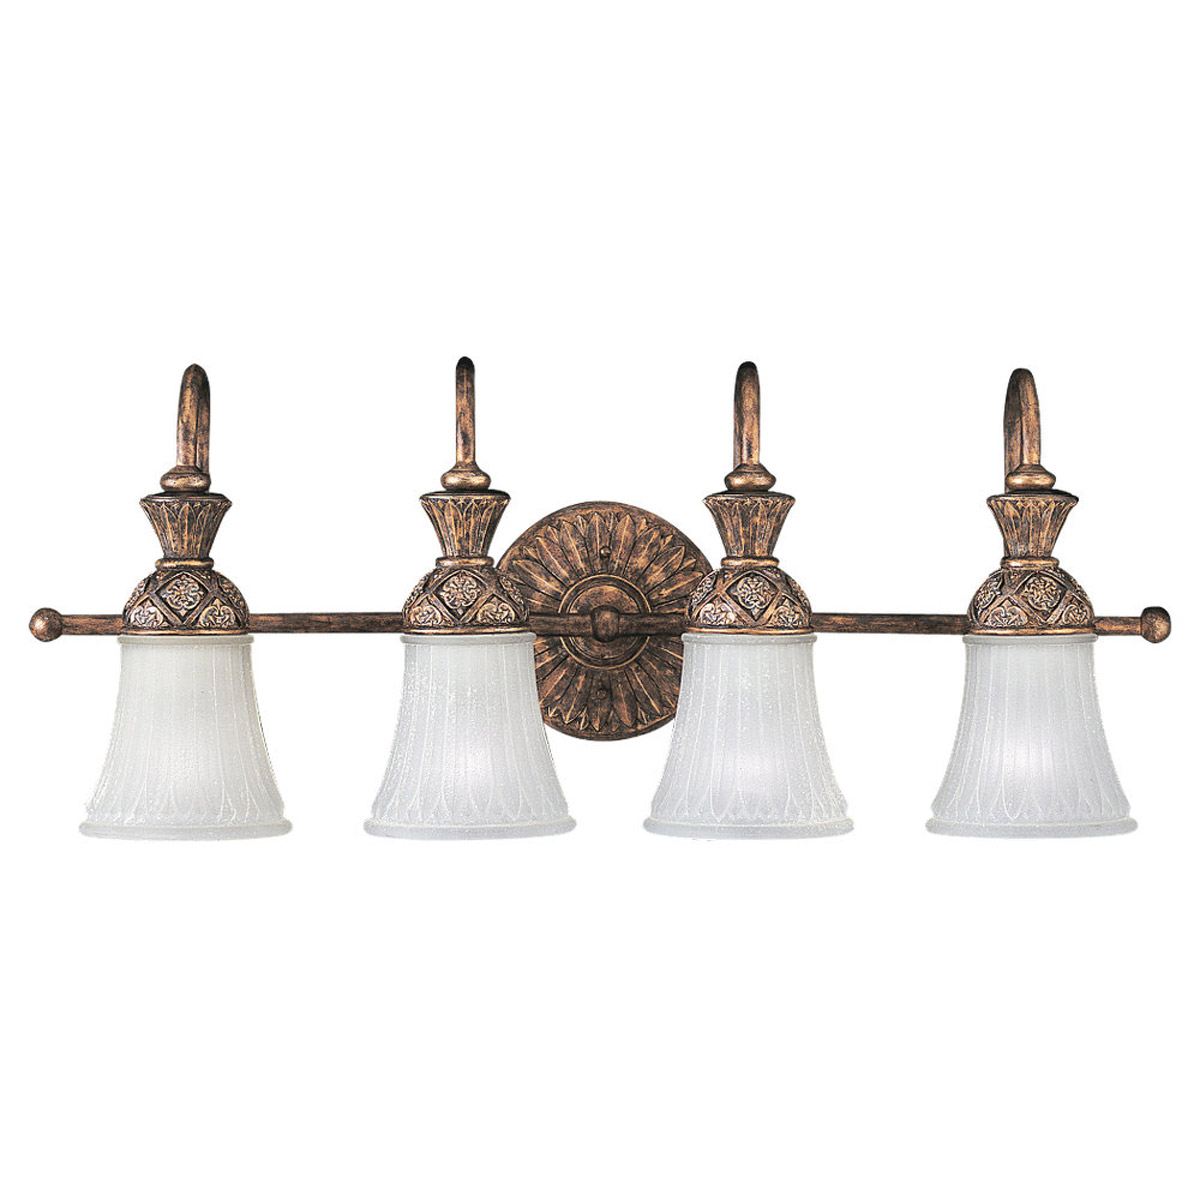 Sea Gull Lighting Highlands 4 Light Bath Vanity in Regal Bronze 47253-758 photo